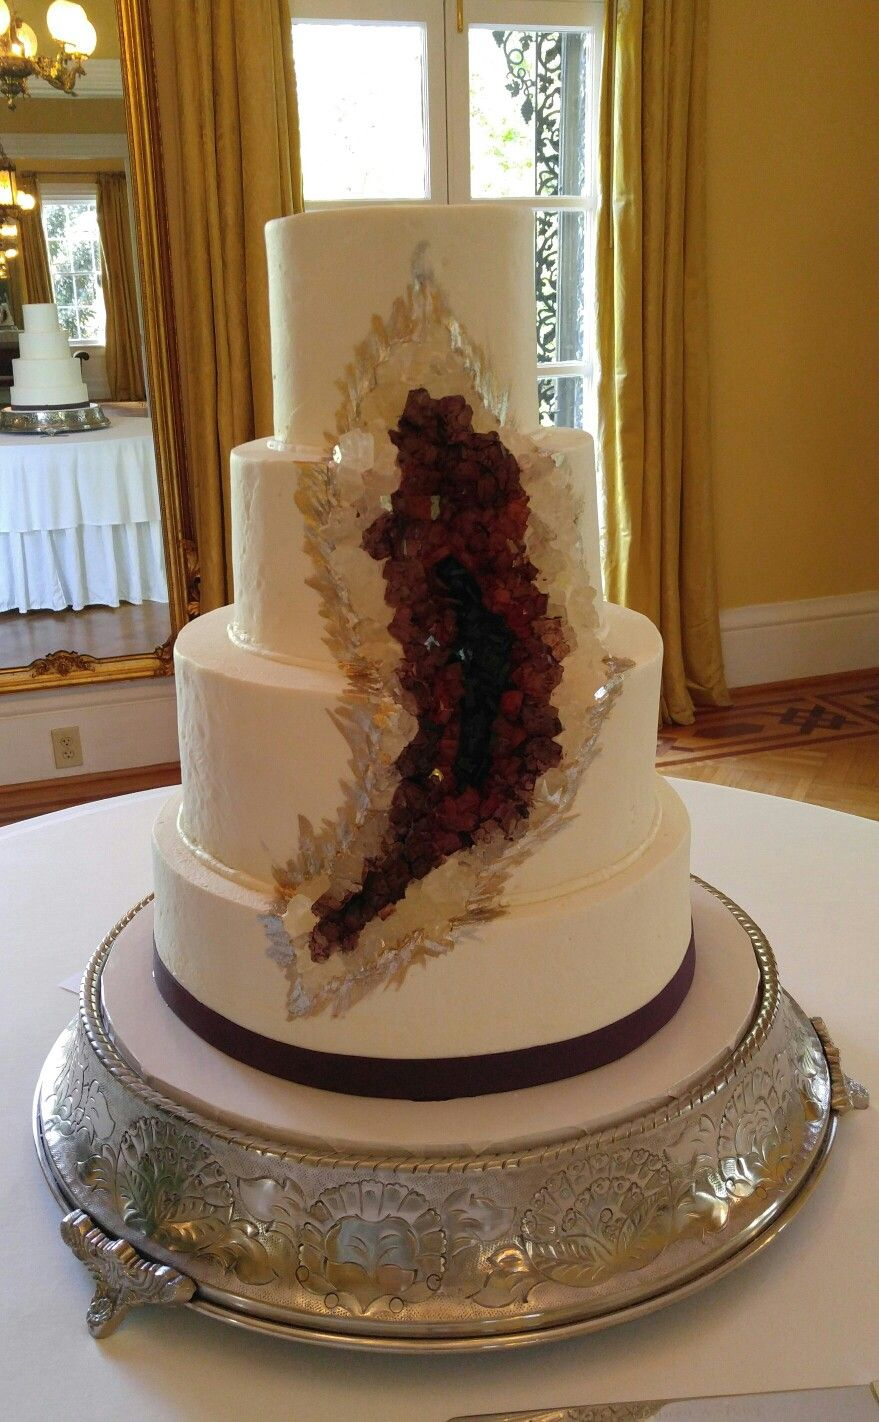 Delightful Geode Crystals Wedding Cake In Ruby Red And Wine. Www.VintageBakery.com 803